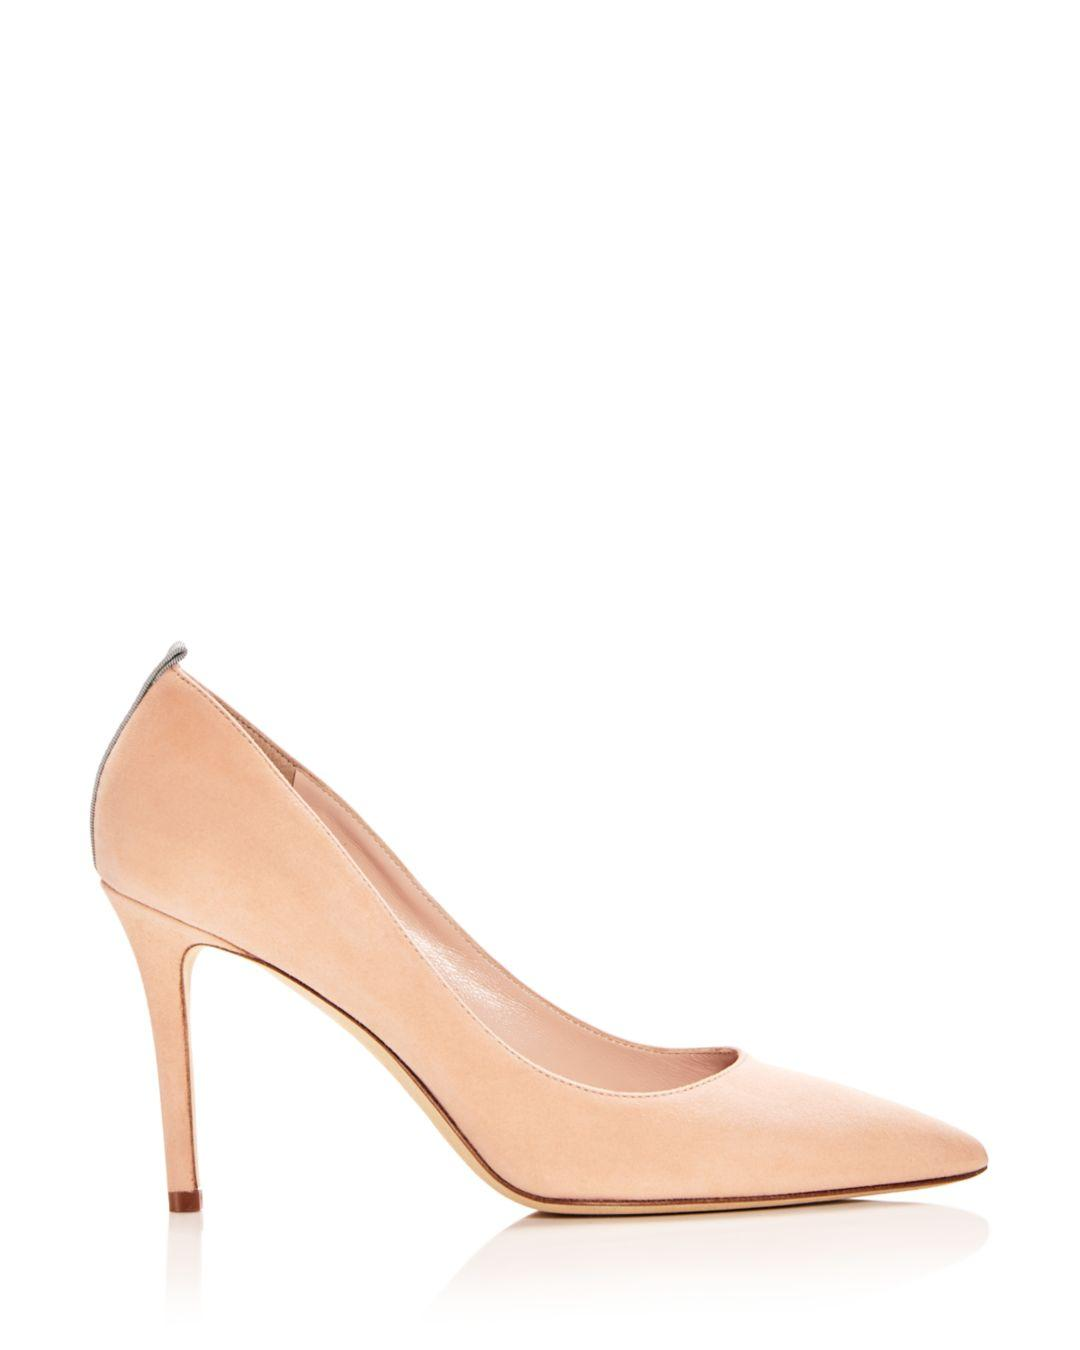 8b4285fa59 Lyst - SJP by Sarah Jessica Parker Women's Fawn Pointed-toe Pumps in  Natural - Save 25%